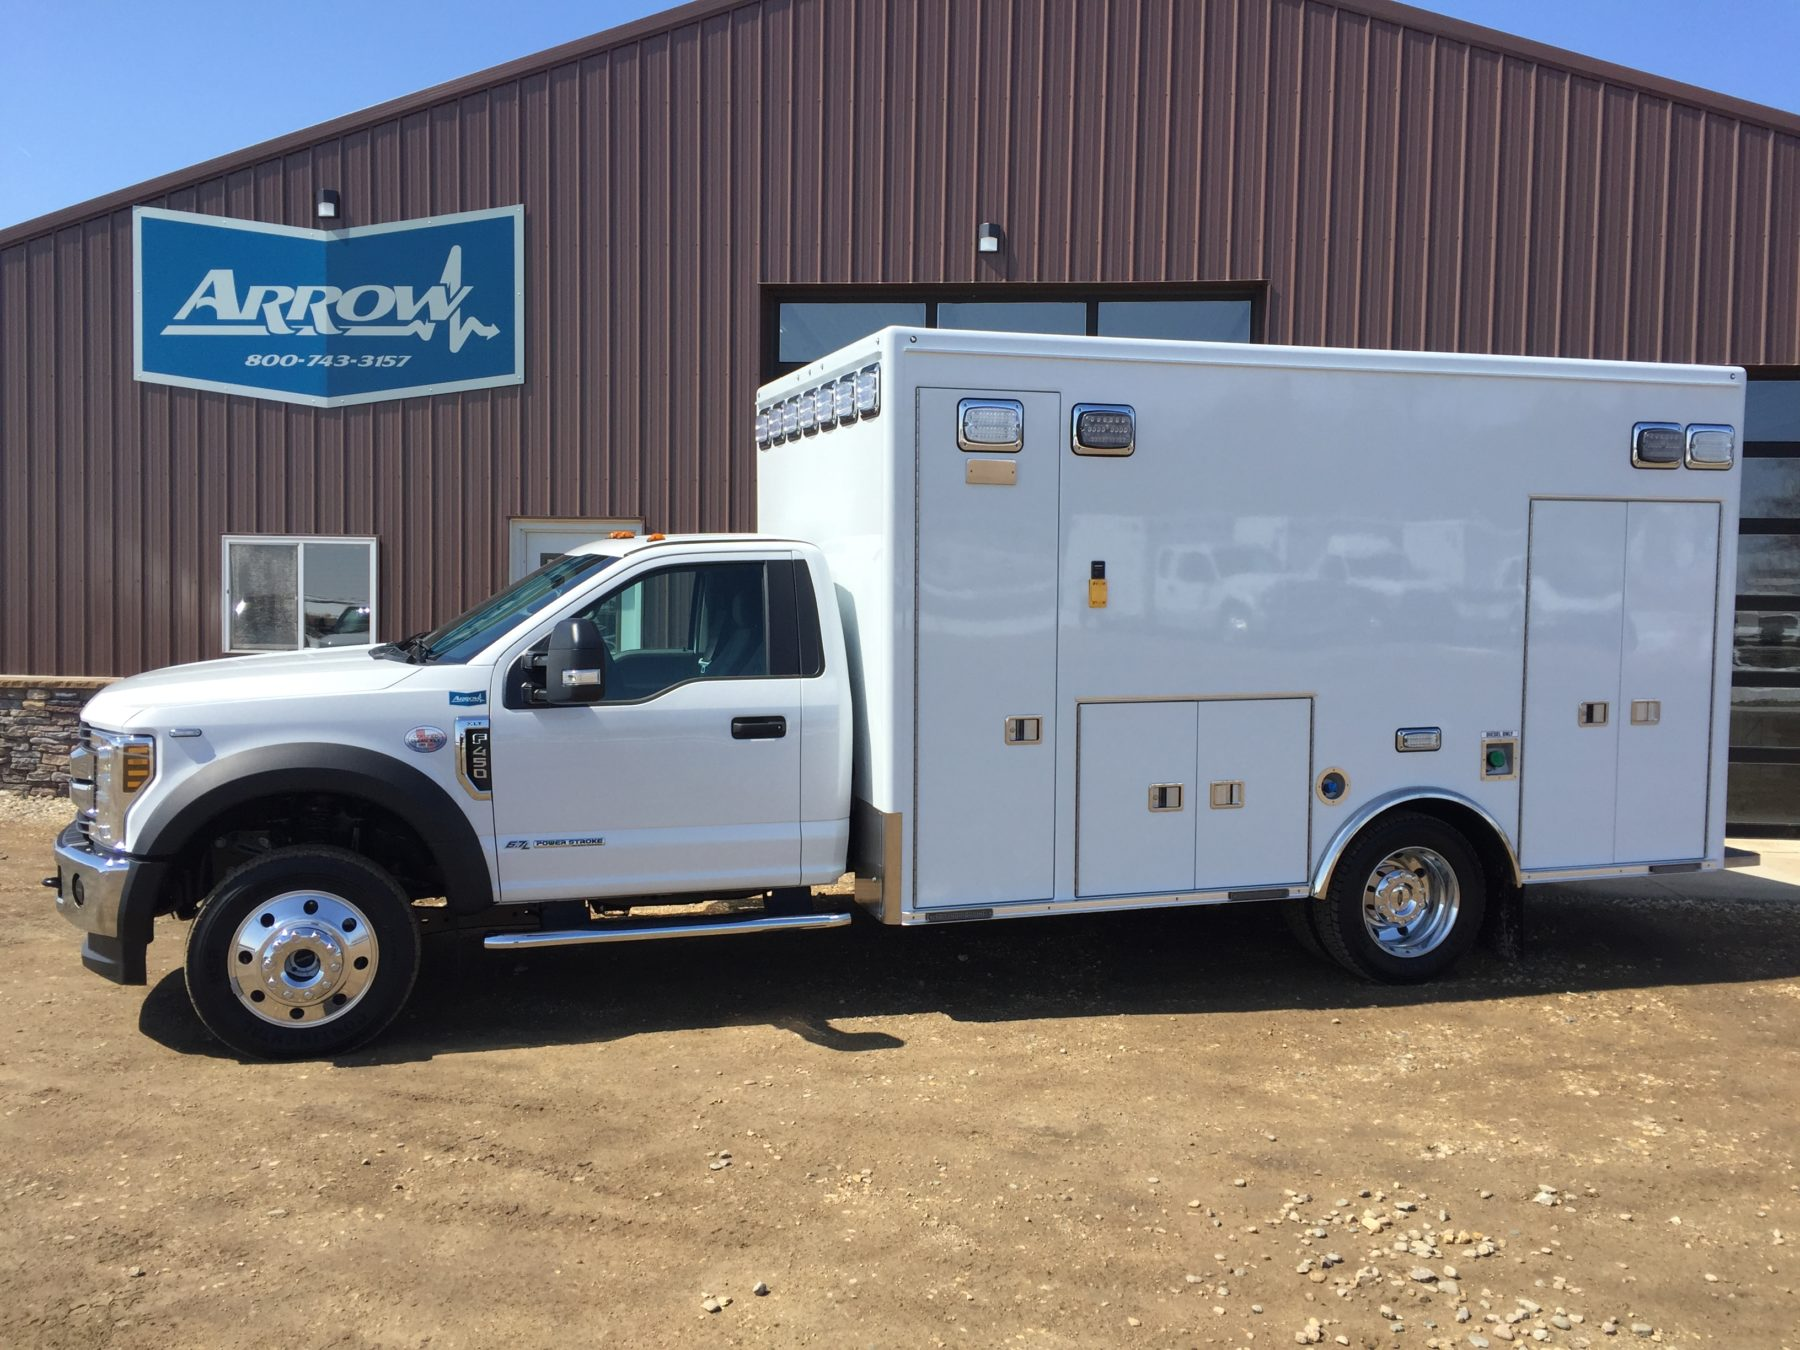 2018 Ford F450 4x4 Heavy Duty Ambulance For Sale – Picture 1